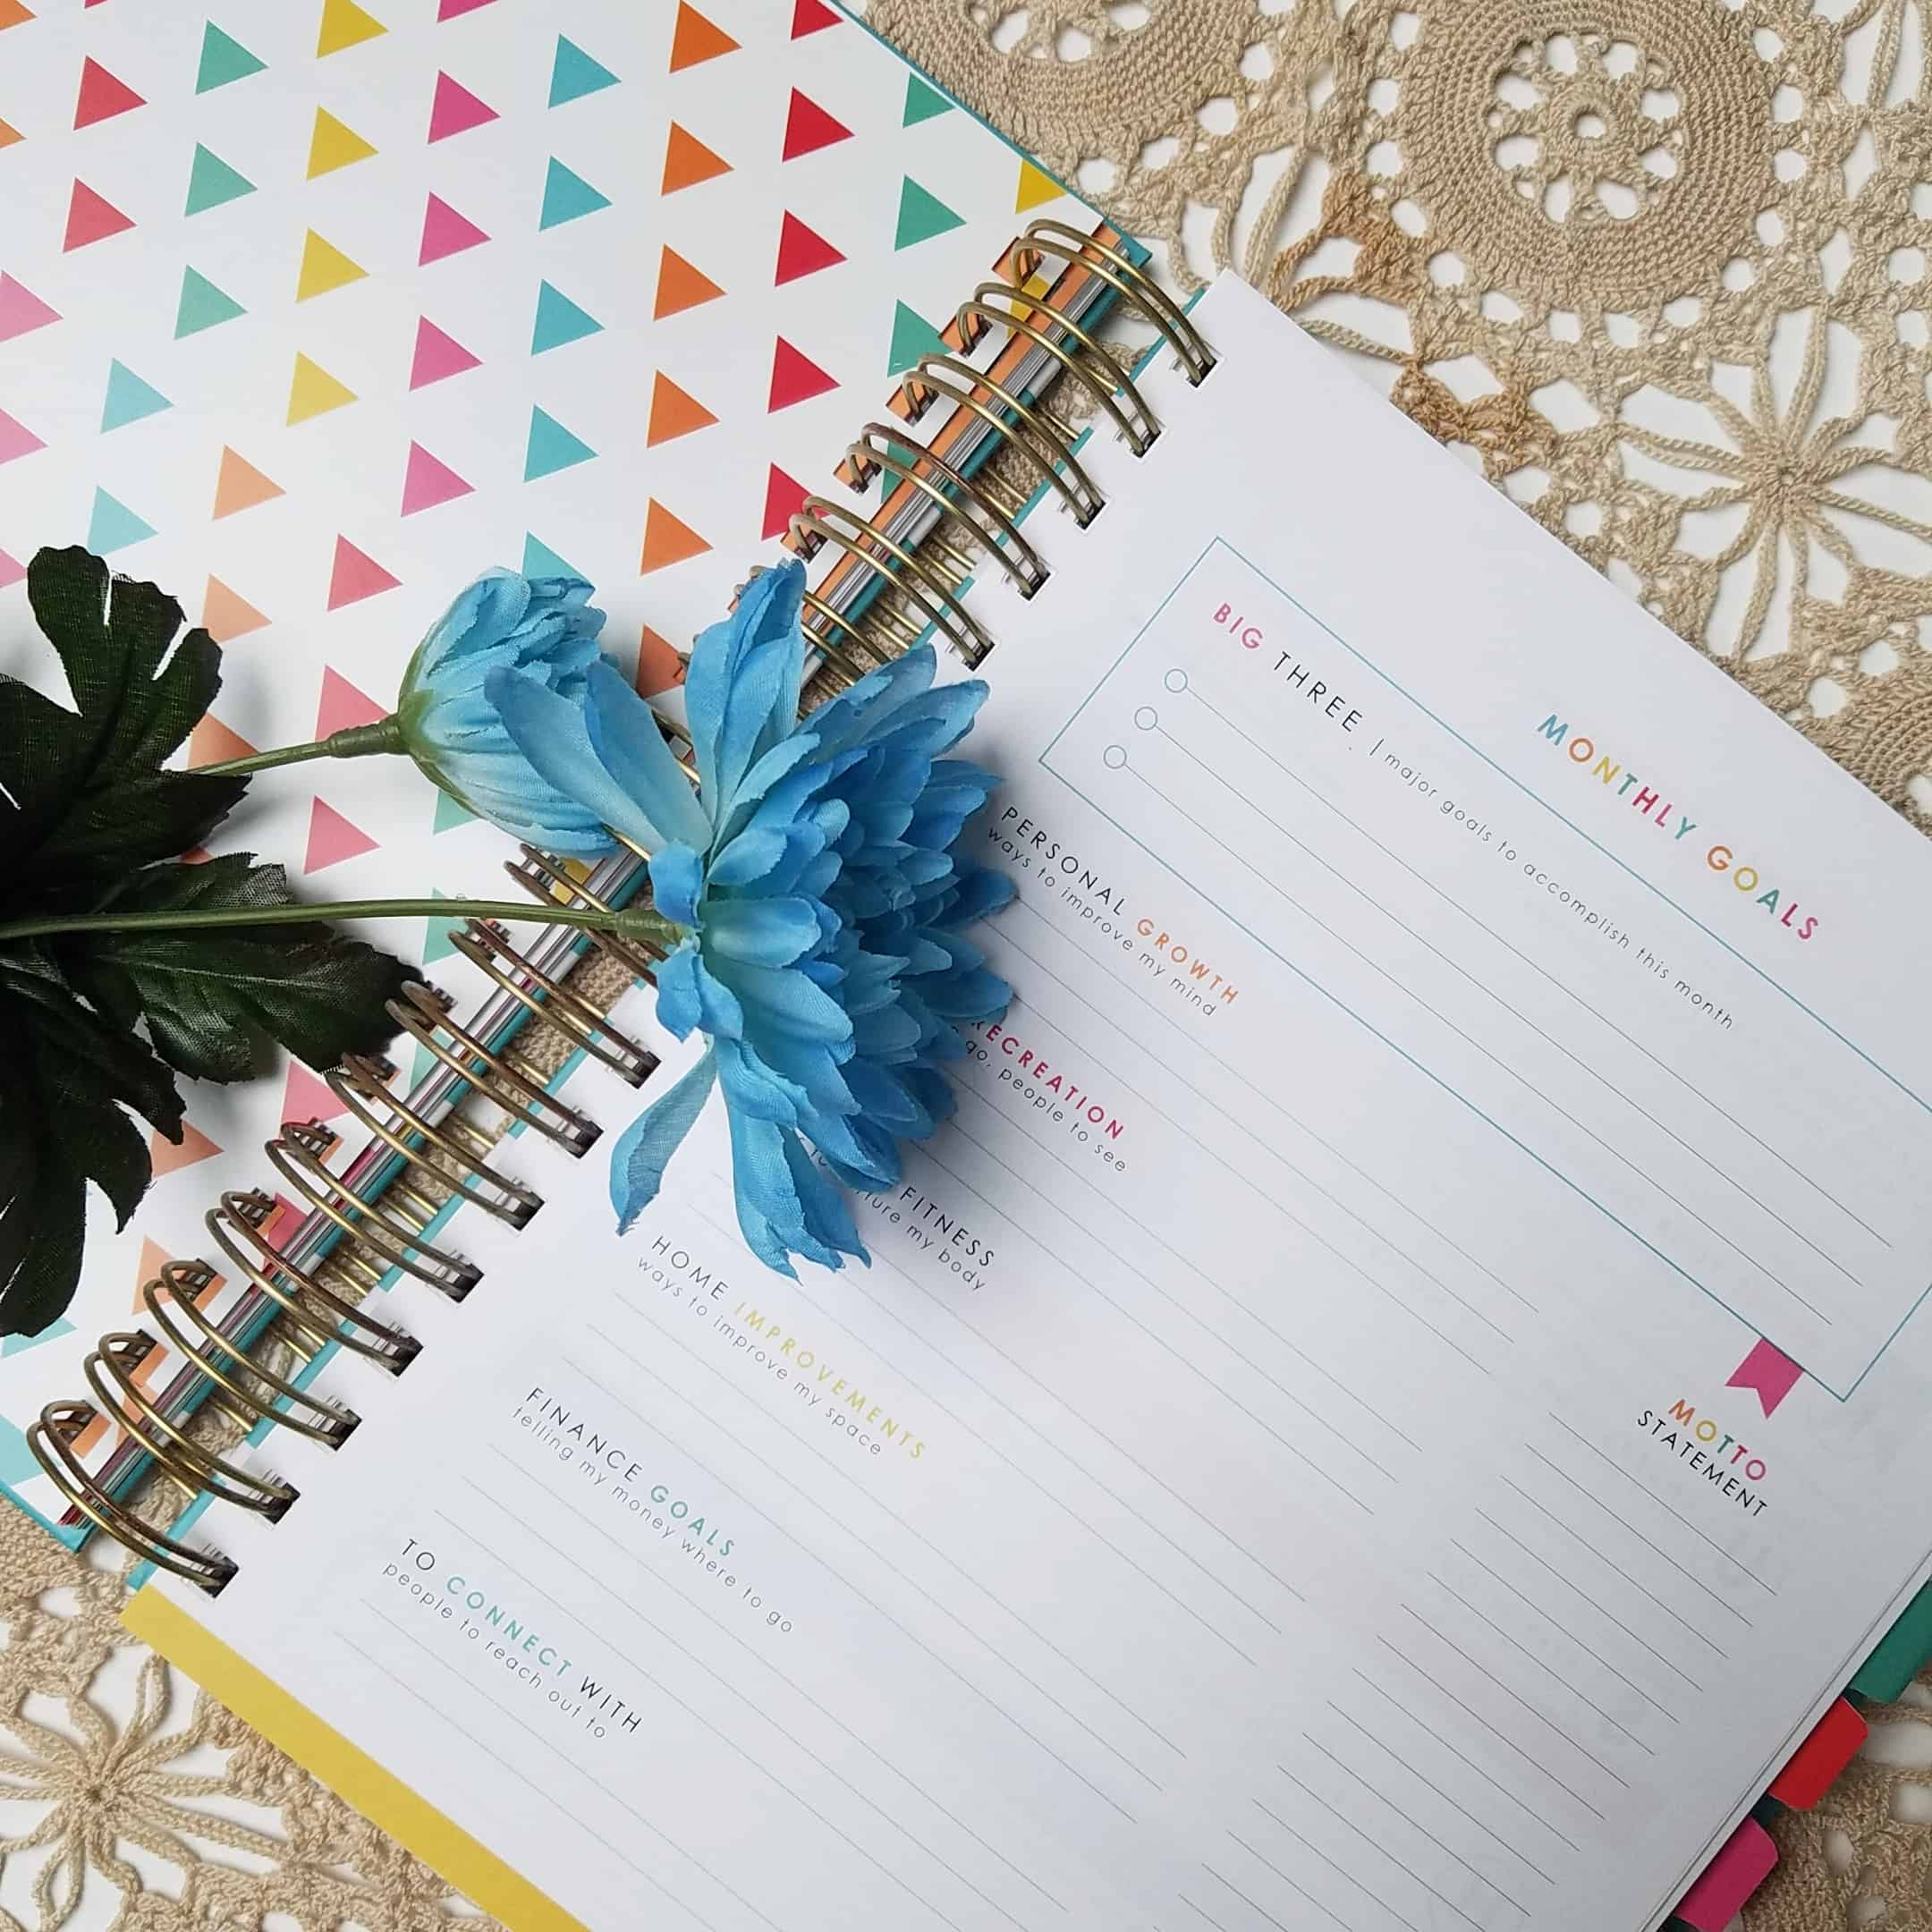 Monthly Goals in the goal crushing living well planner